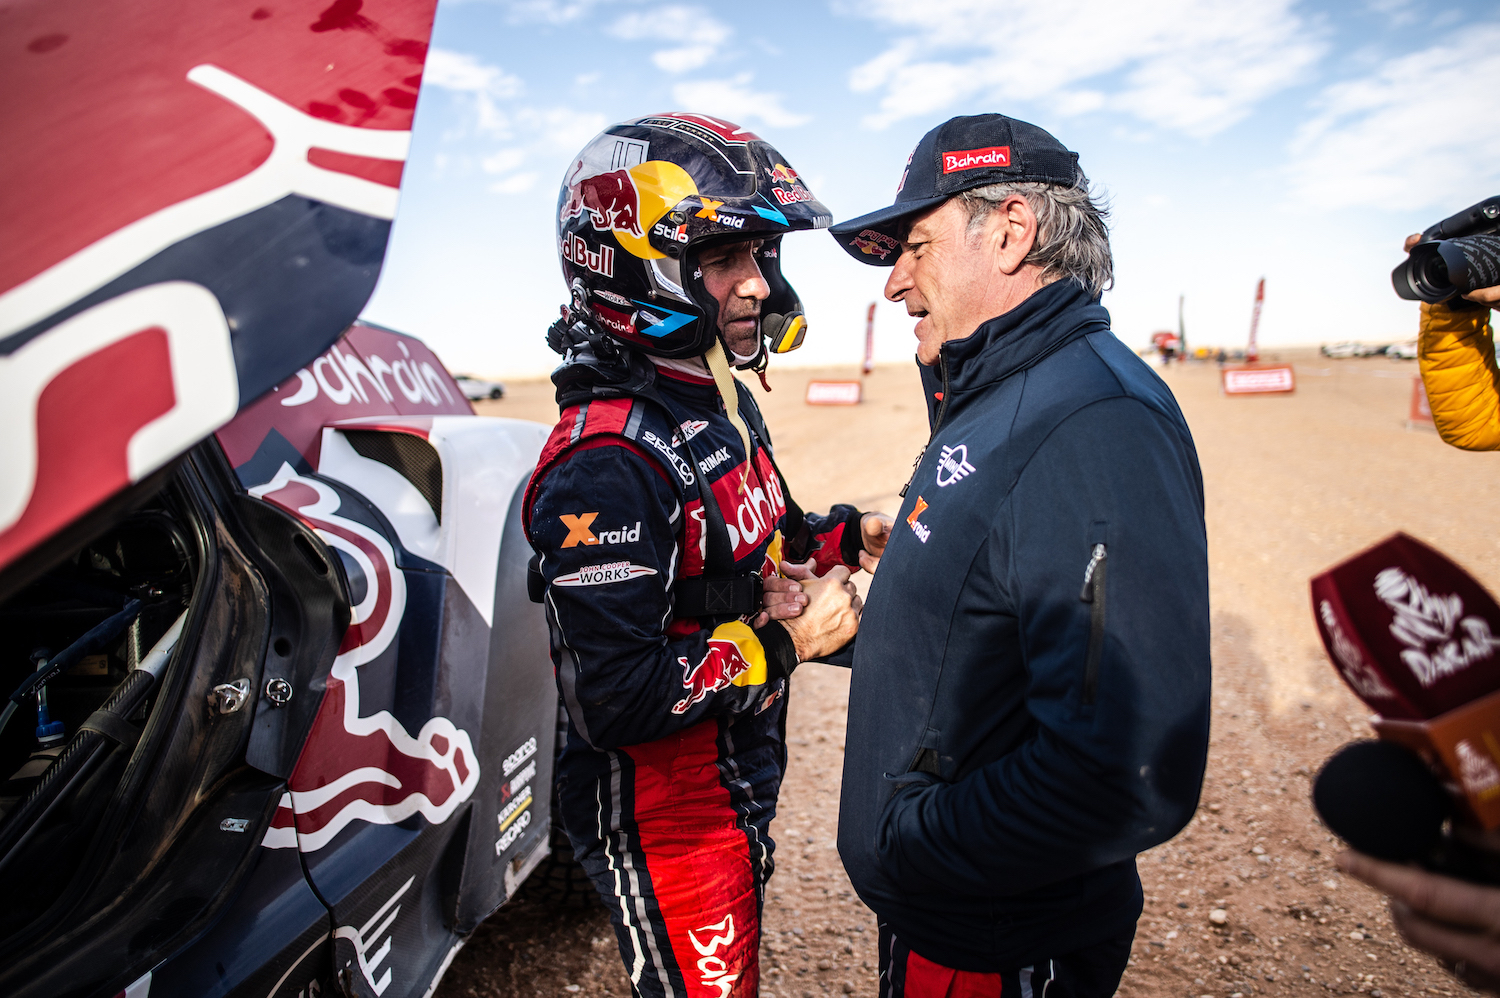 rally car race teams talk